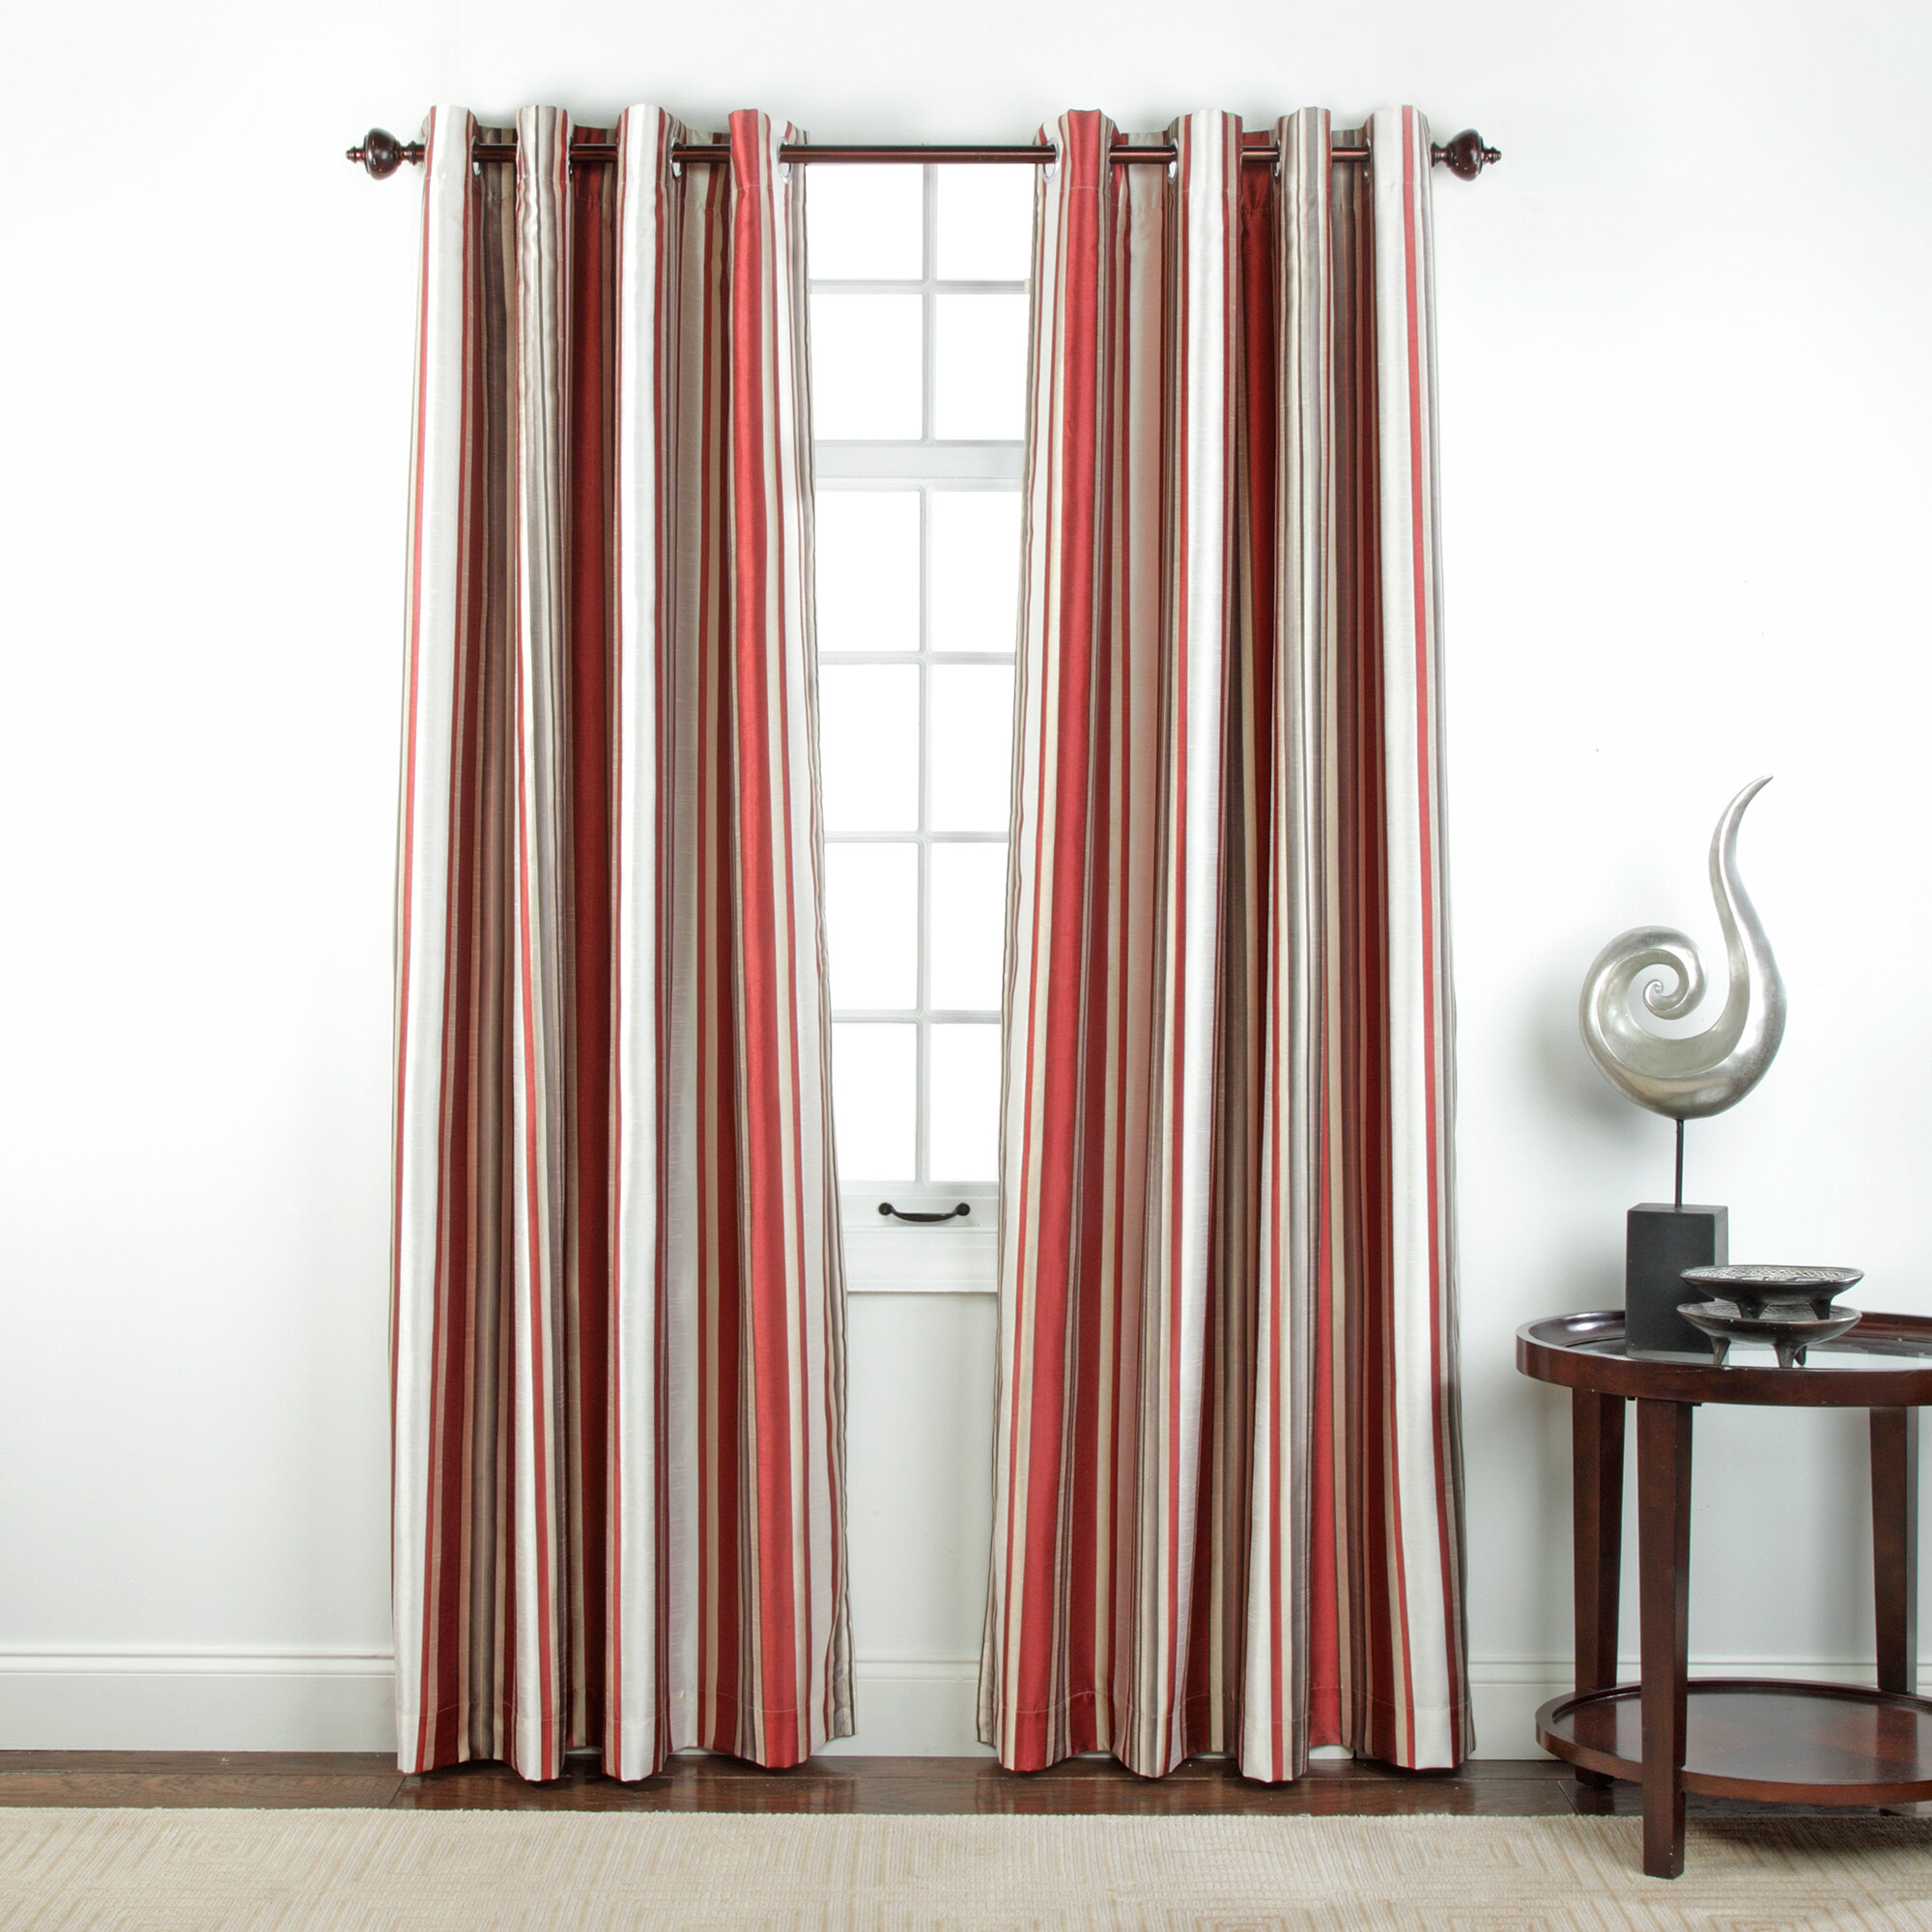 sheer blackout lavish horizontal curtain pinstripe for curtains black pink or blind gray panels org damask navy tan boatylicious and beautiful with vertical ivory coral blue striped window white cotton